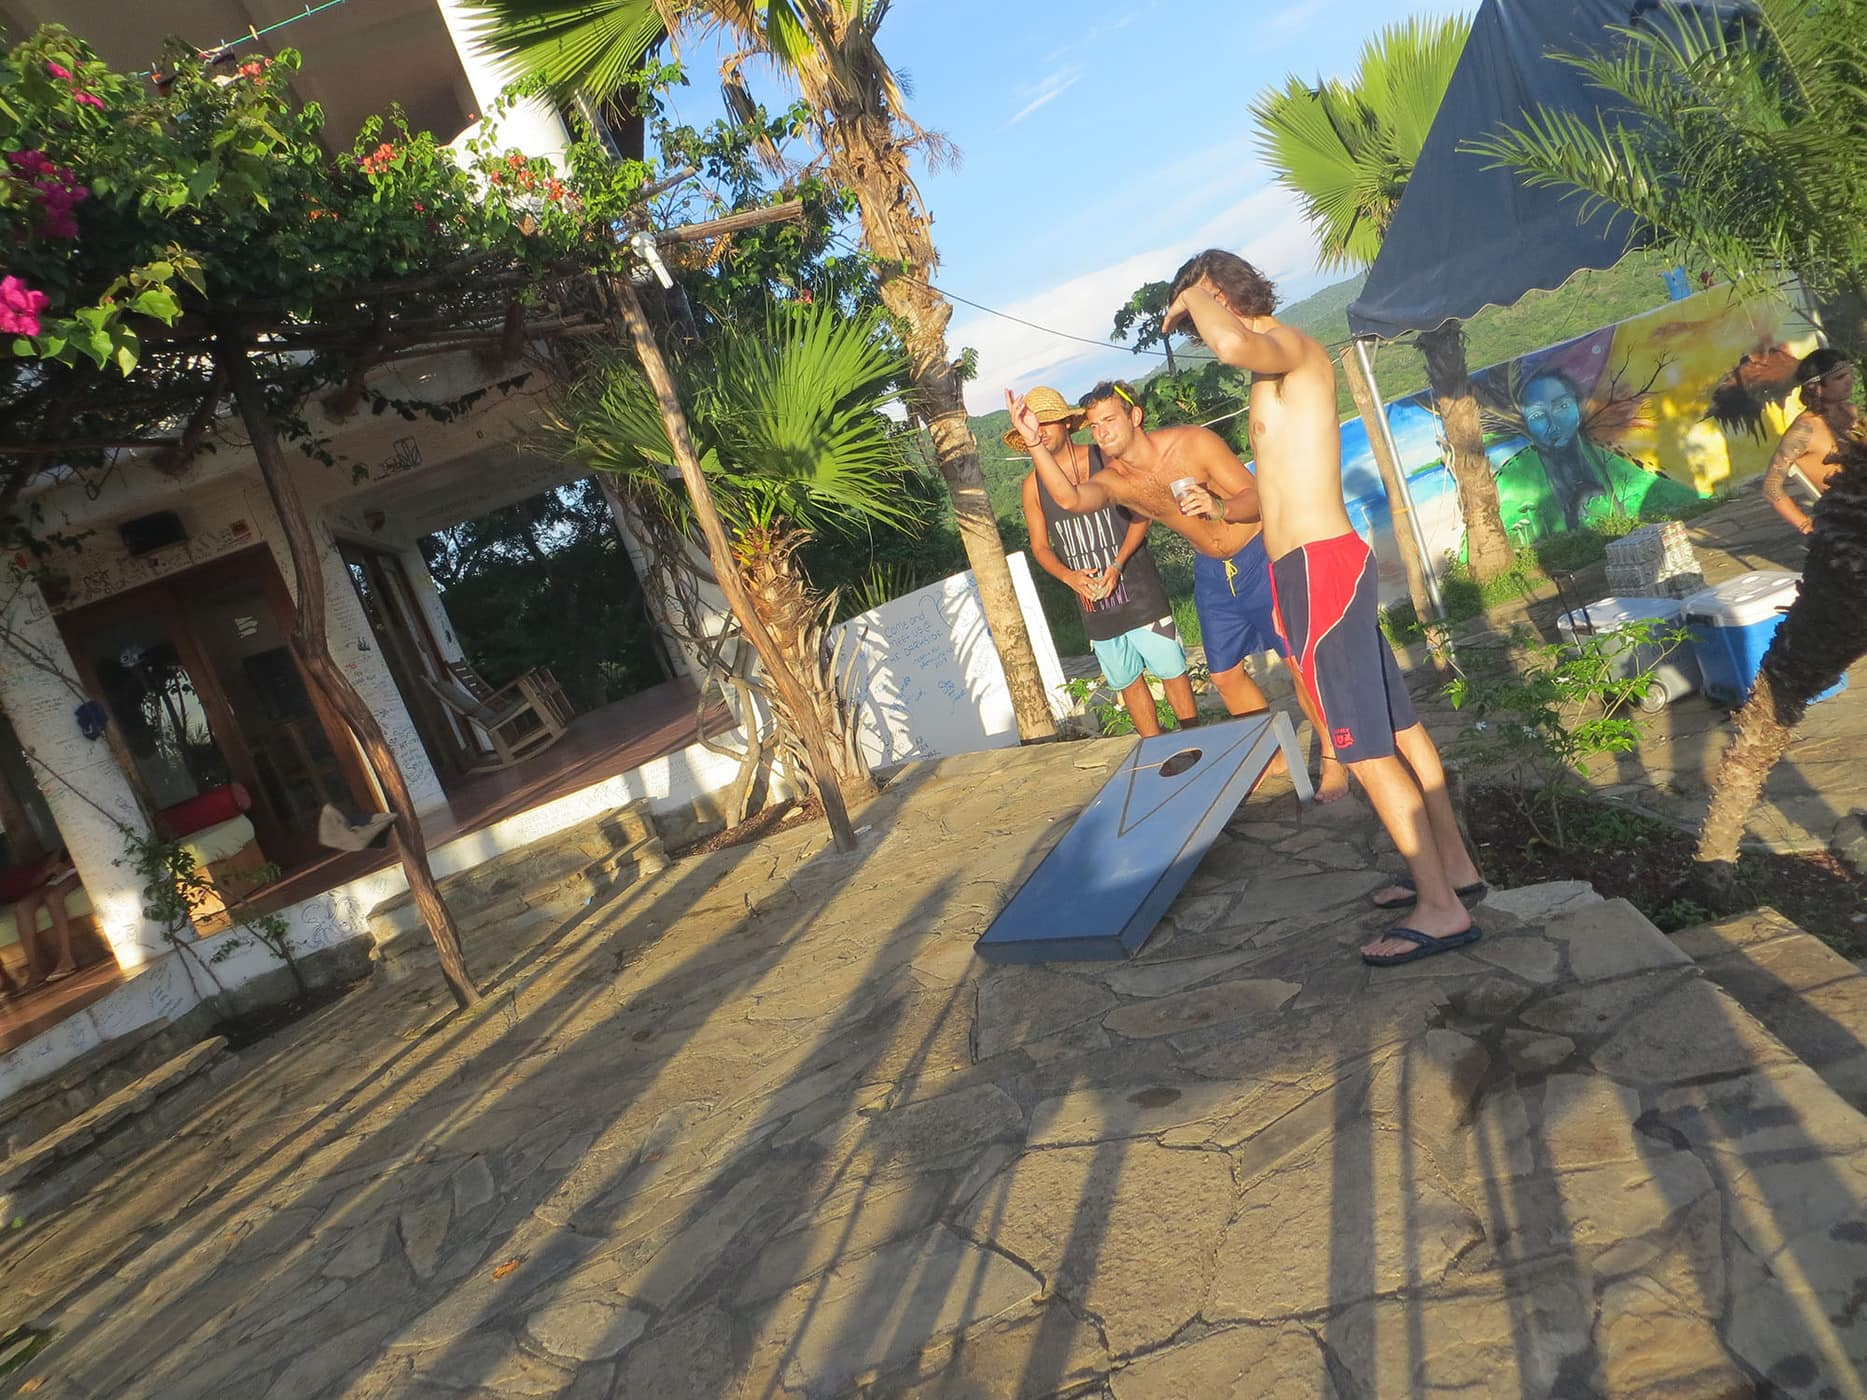 Playing bags at the Sunday Funday Pool Crawl in San Juan Del Sur, Nicaragua